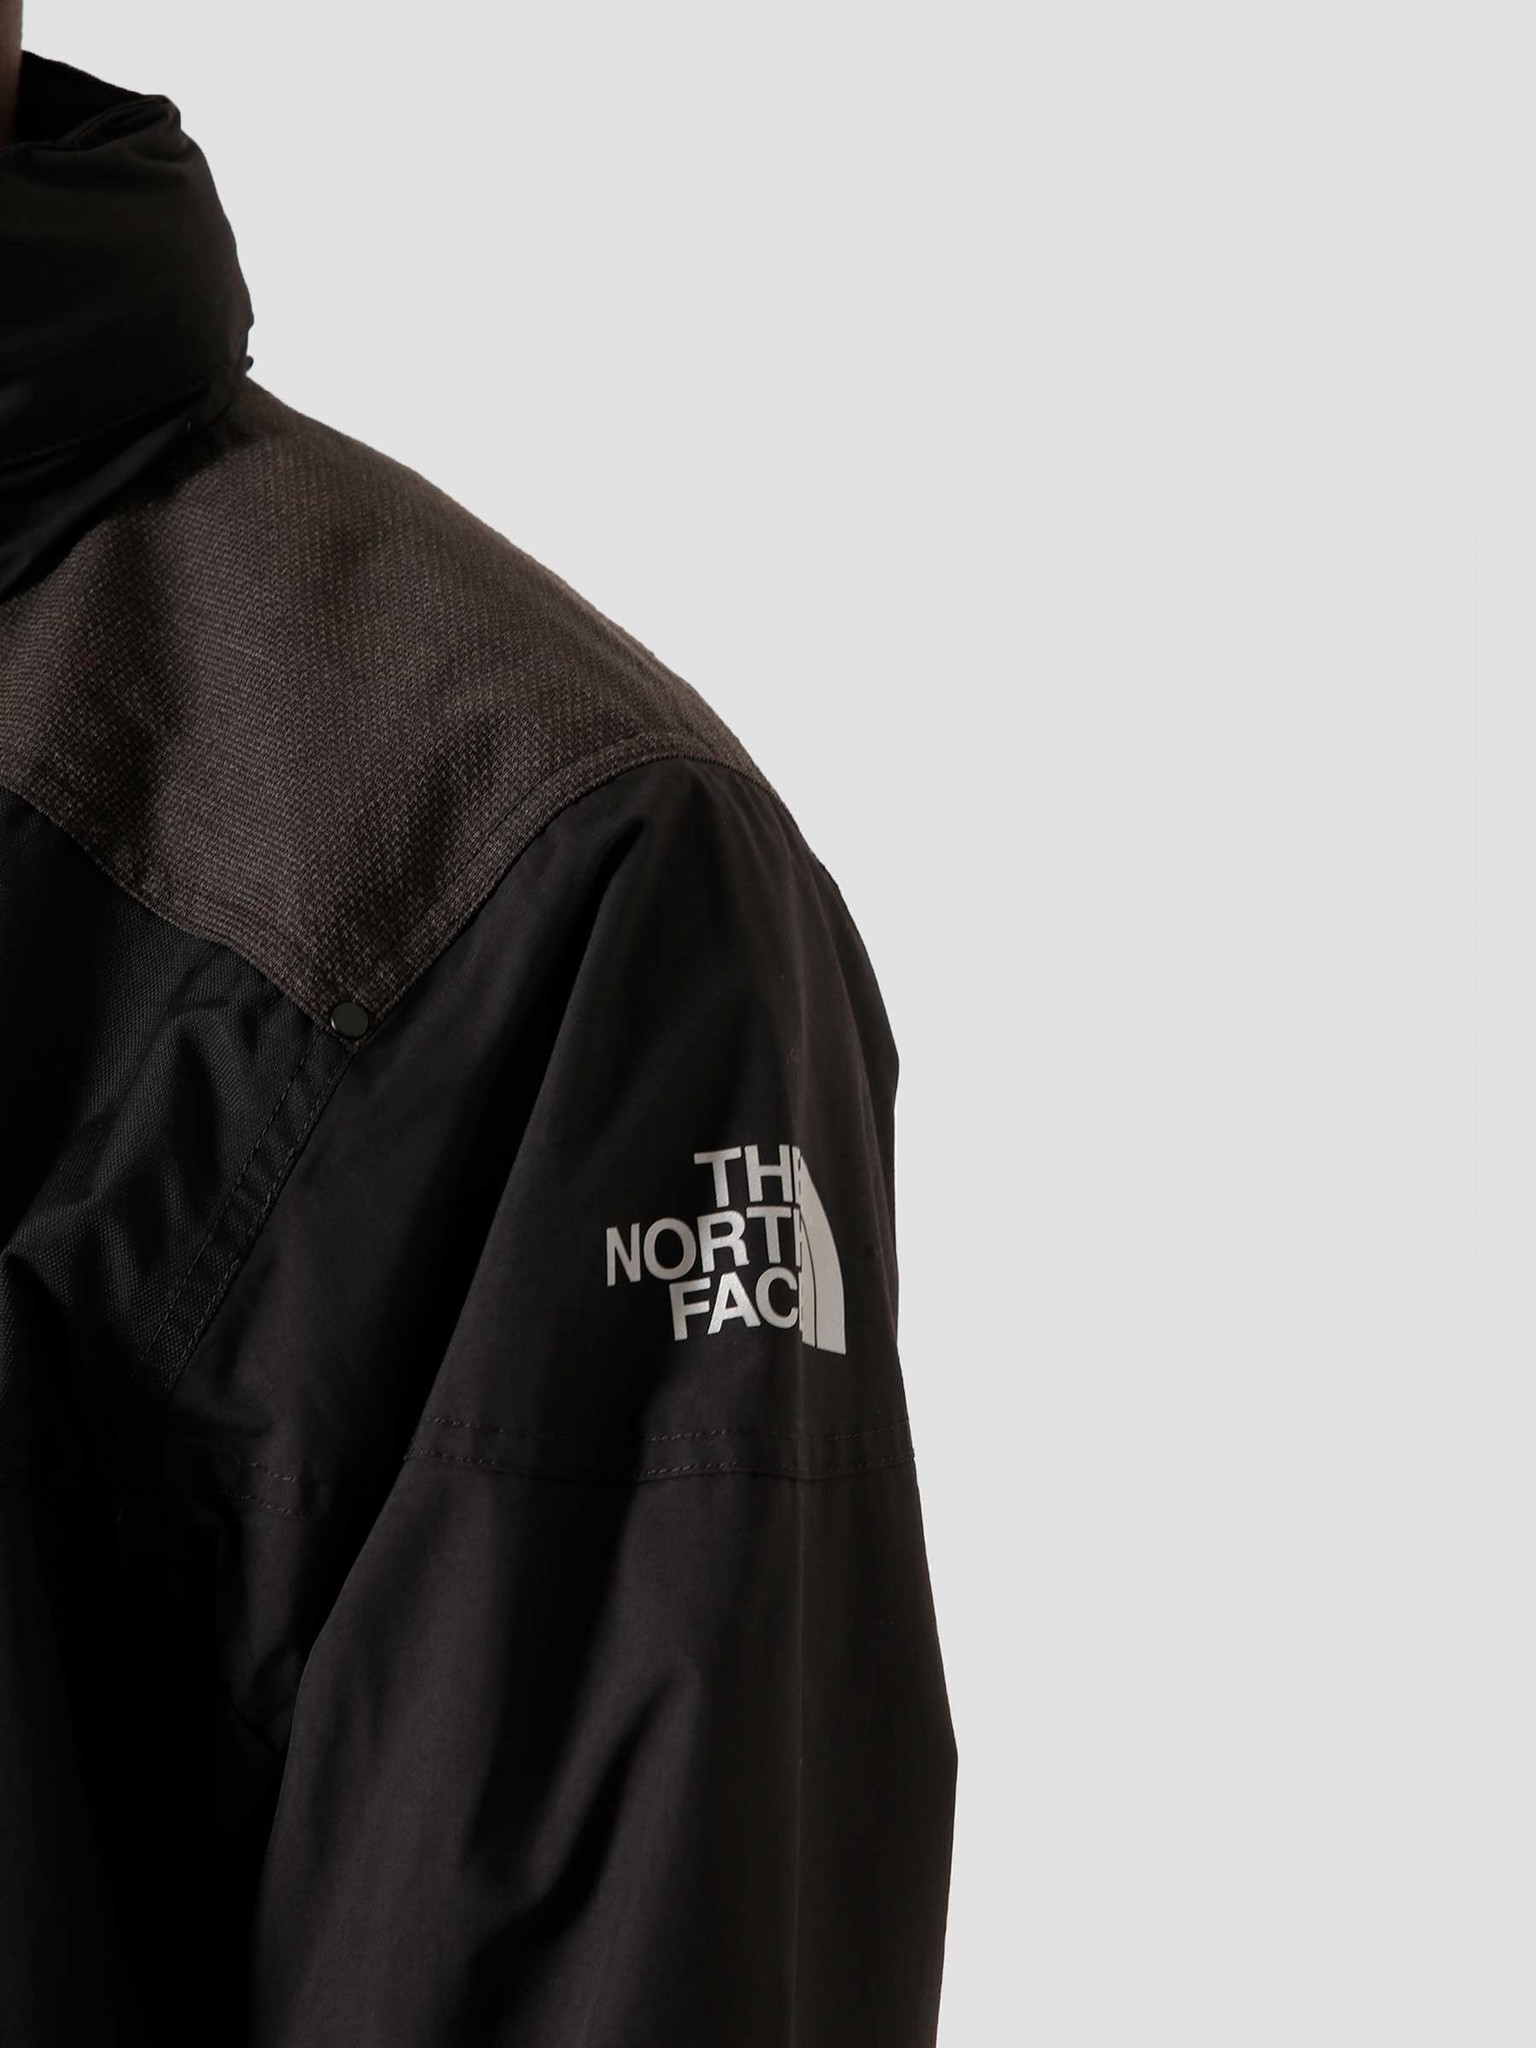 The North Face The North Face Steep Tech Jacket Black NF0A4QYSJK3